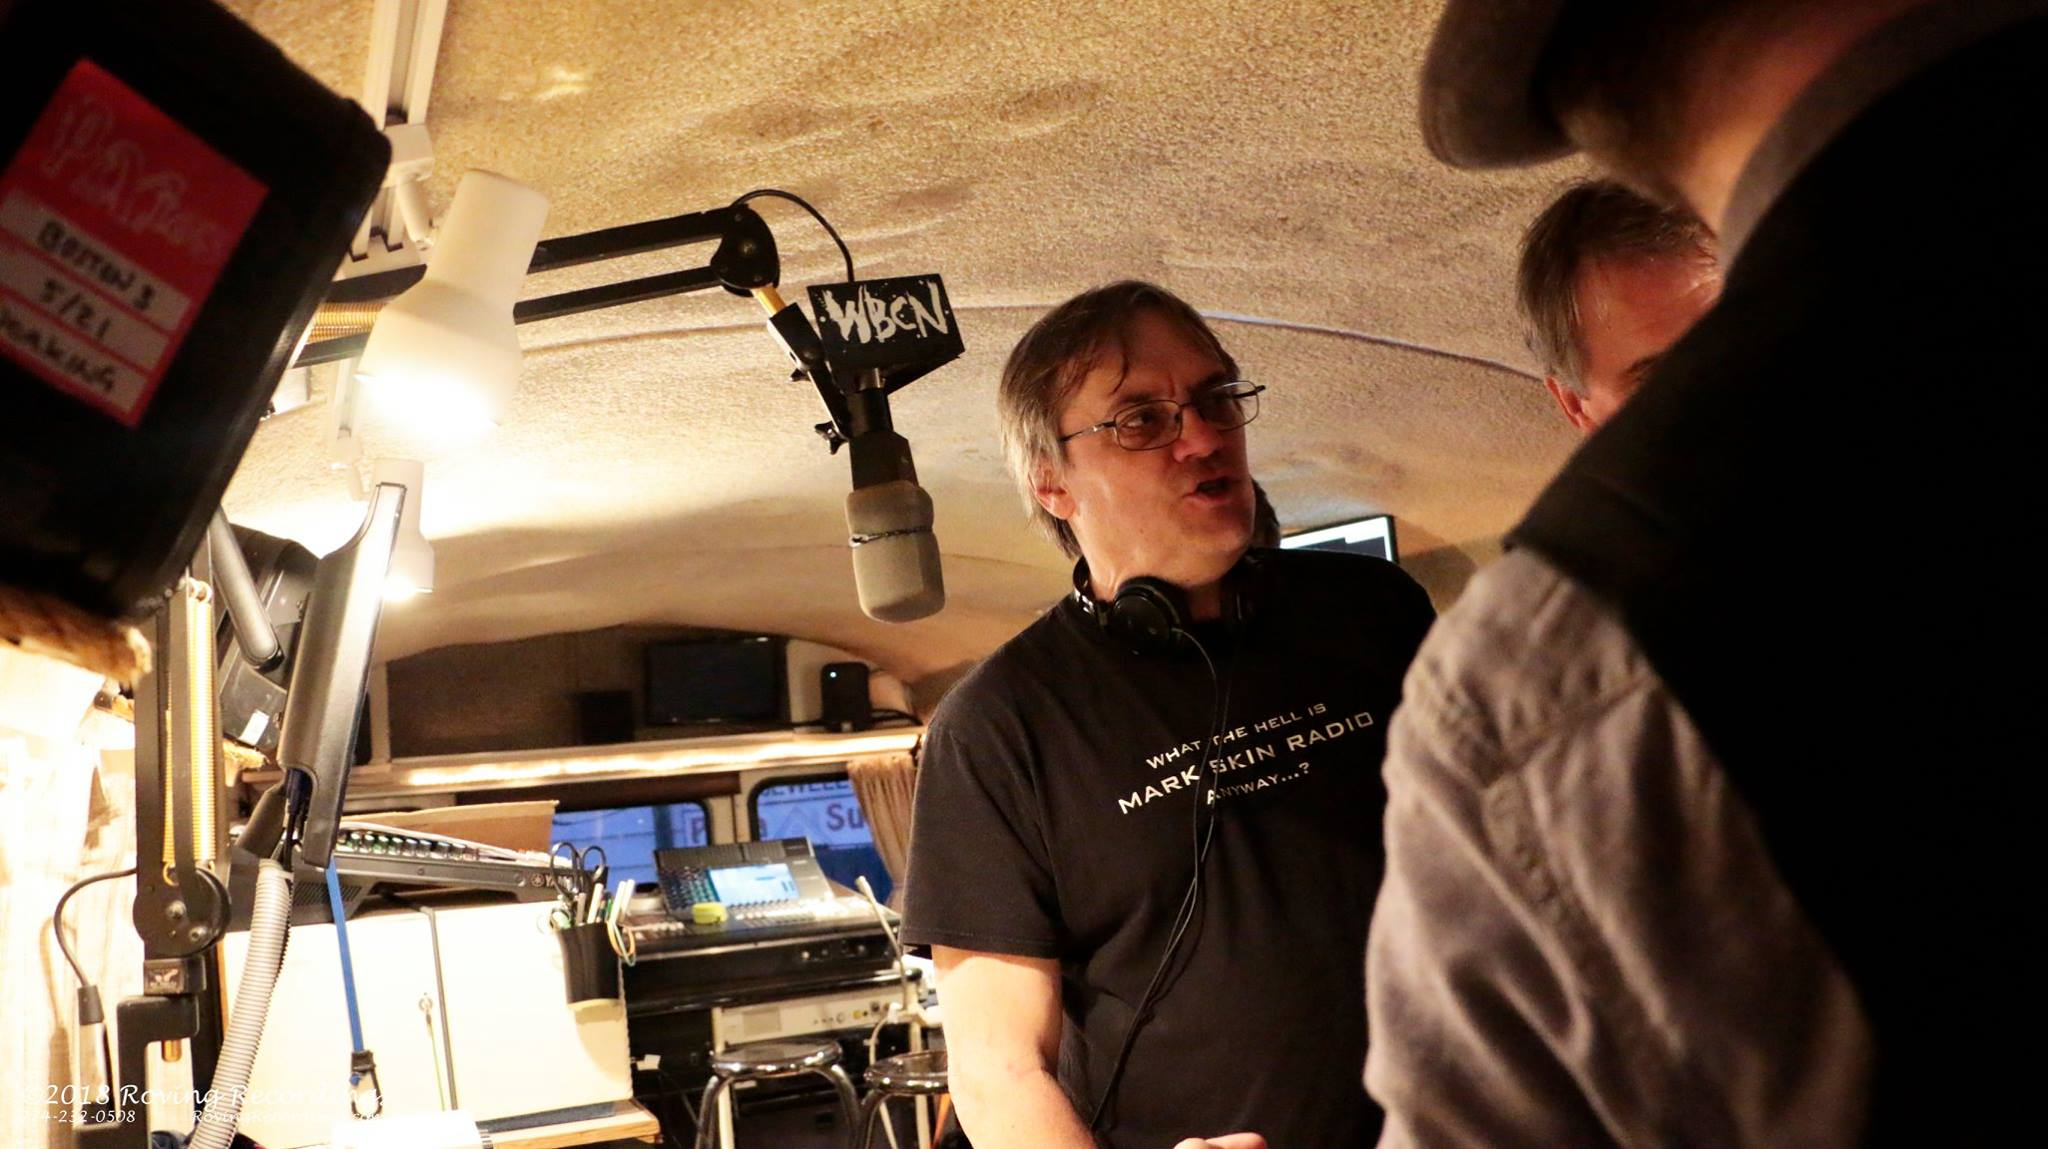 Chris Johnson conducted an interview in Sam Kopper's mobile studio in the early days.